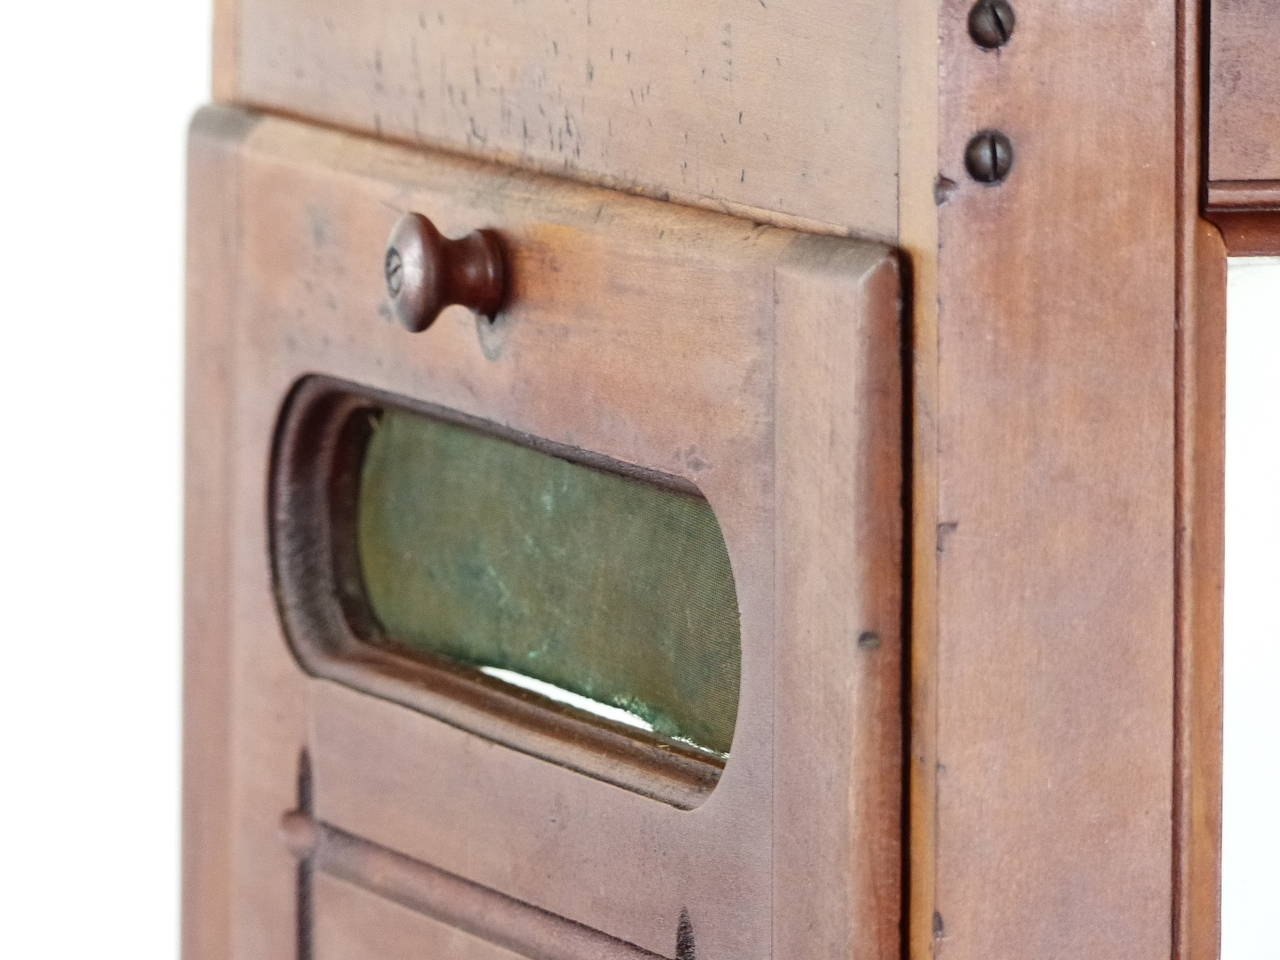 1930 Antique Merchantile store cheese cutter display cabinet In Good  Condition For Sale In Surrey, - 1930 Antique Merchantile Store Cheese Cutter Display Cabinet At 1stdibs